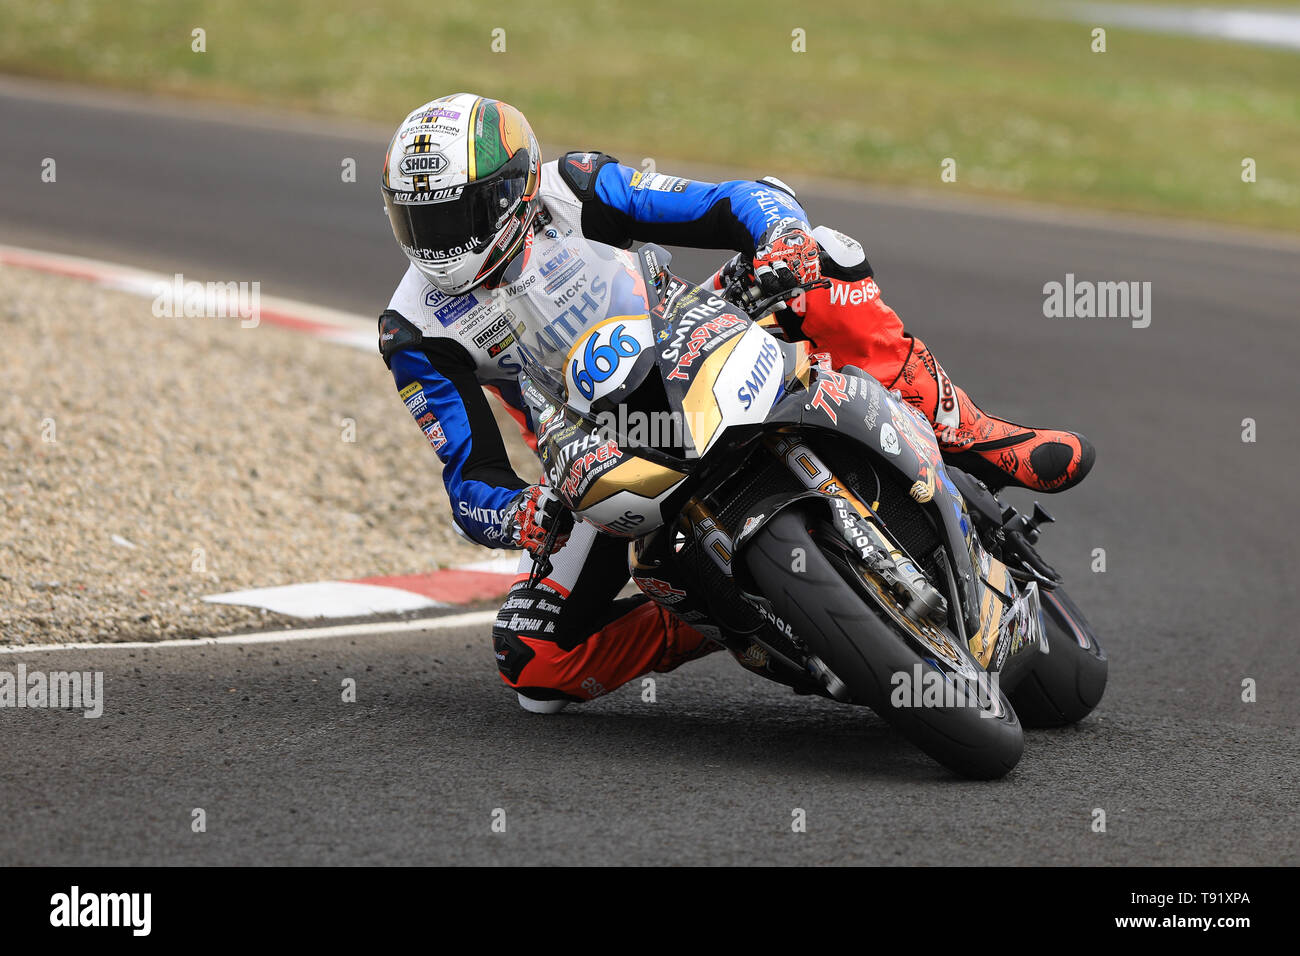 Portrush, Northern Ireland. 16th May, 2019. International North West 200 Motorcycle road racing, Thursday practice and evening racing; Peter Hickman on the Trooper Beer By Smiths Racing Triumph during the SuperSport qualifying session Credit: Action Plus Sports/Alamy Live News - Stock Image